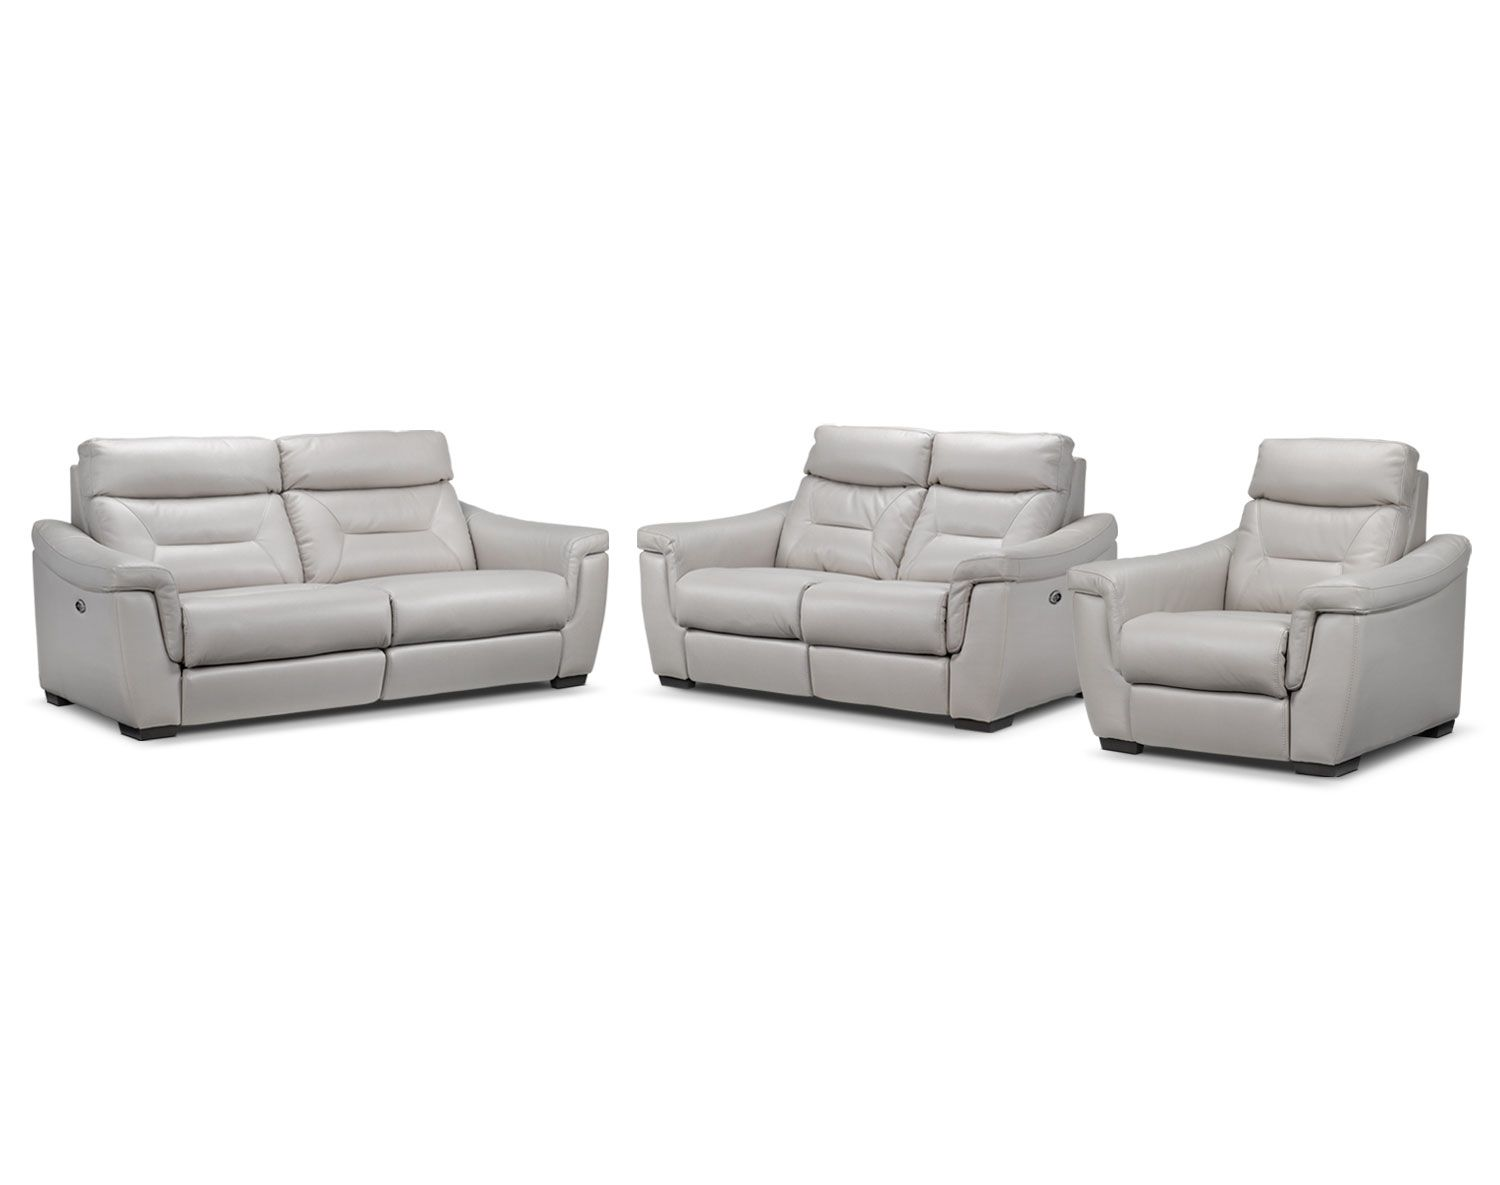 Reclining Sofa Living Room Furniture The Ralston Collection Ralston Power Reclining Sofa